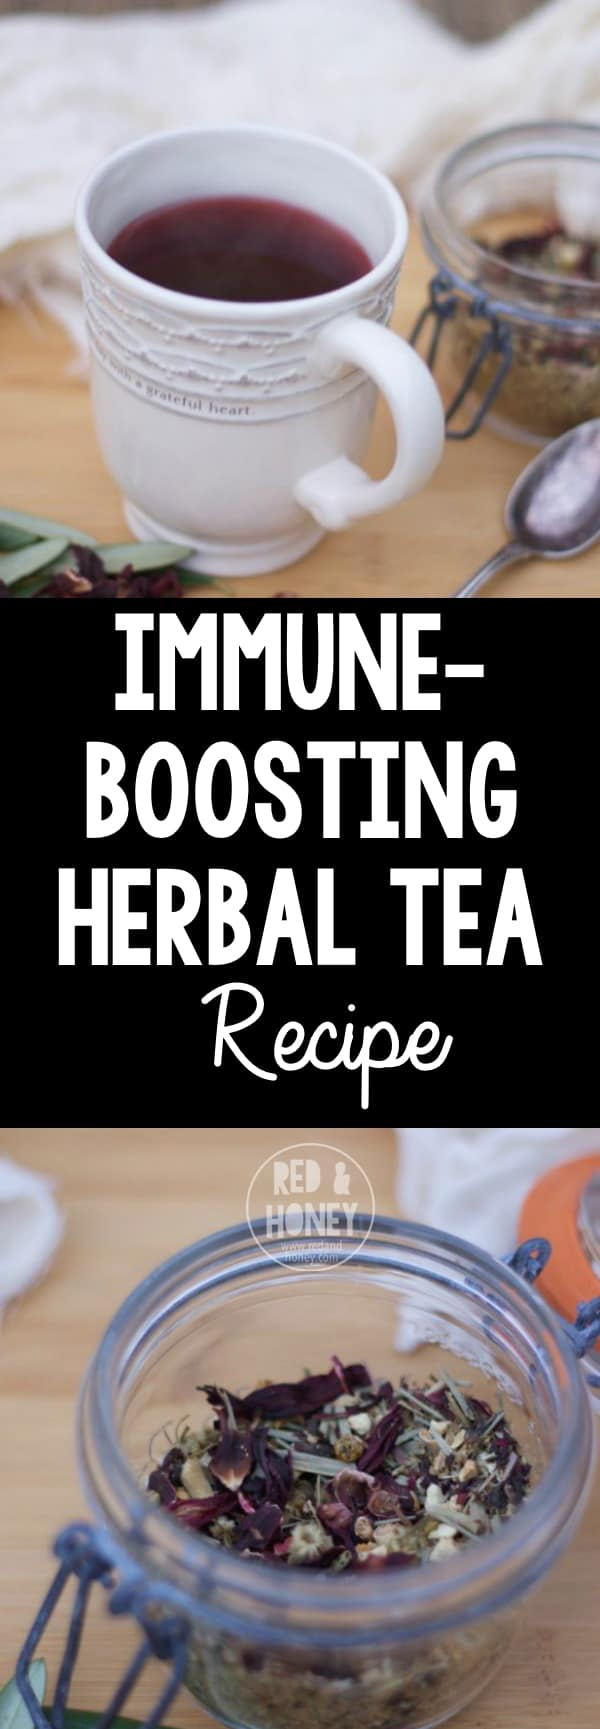 This immune-boosting tea blend is quick to whip up when you have the herbs on hand, and tastes great too!